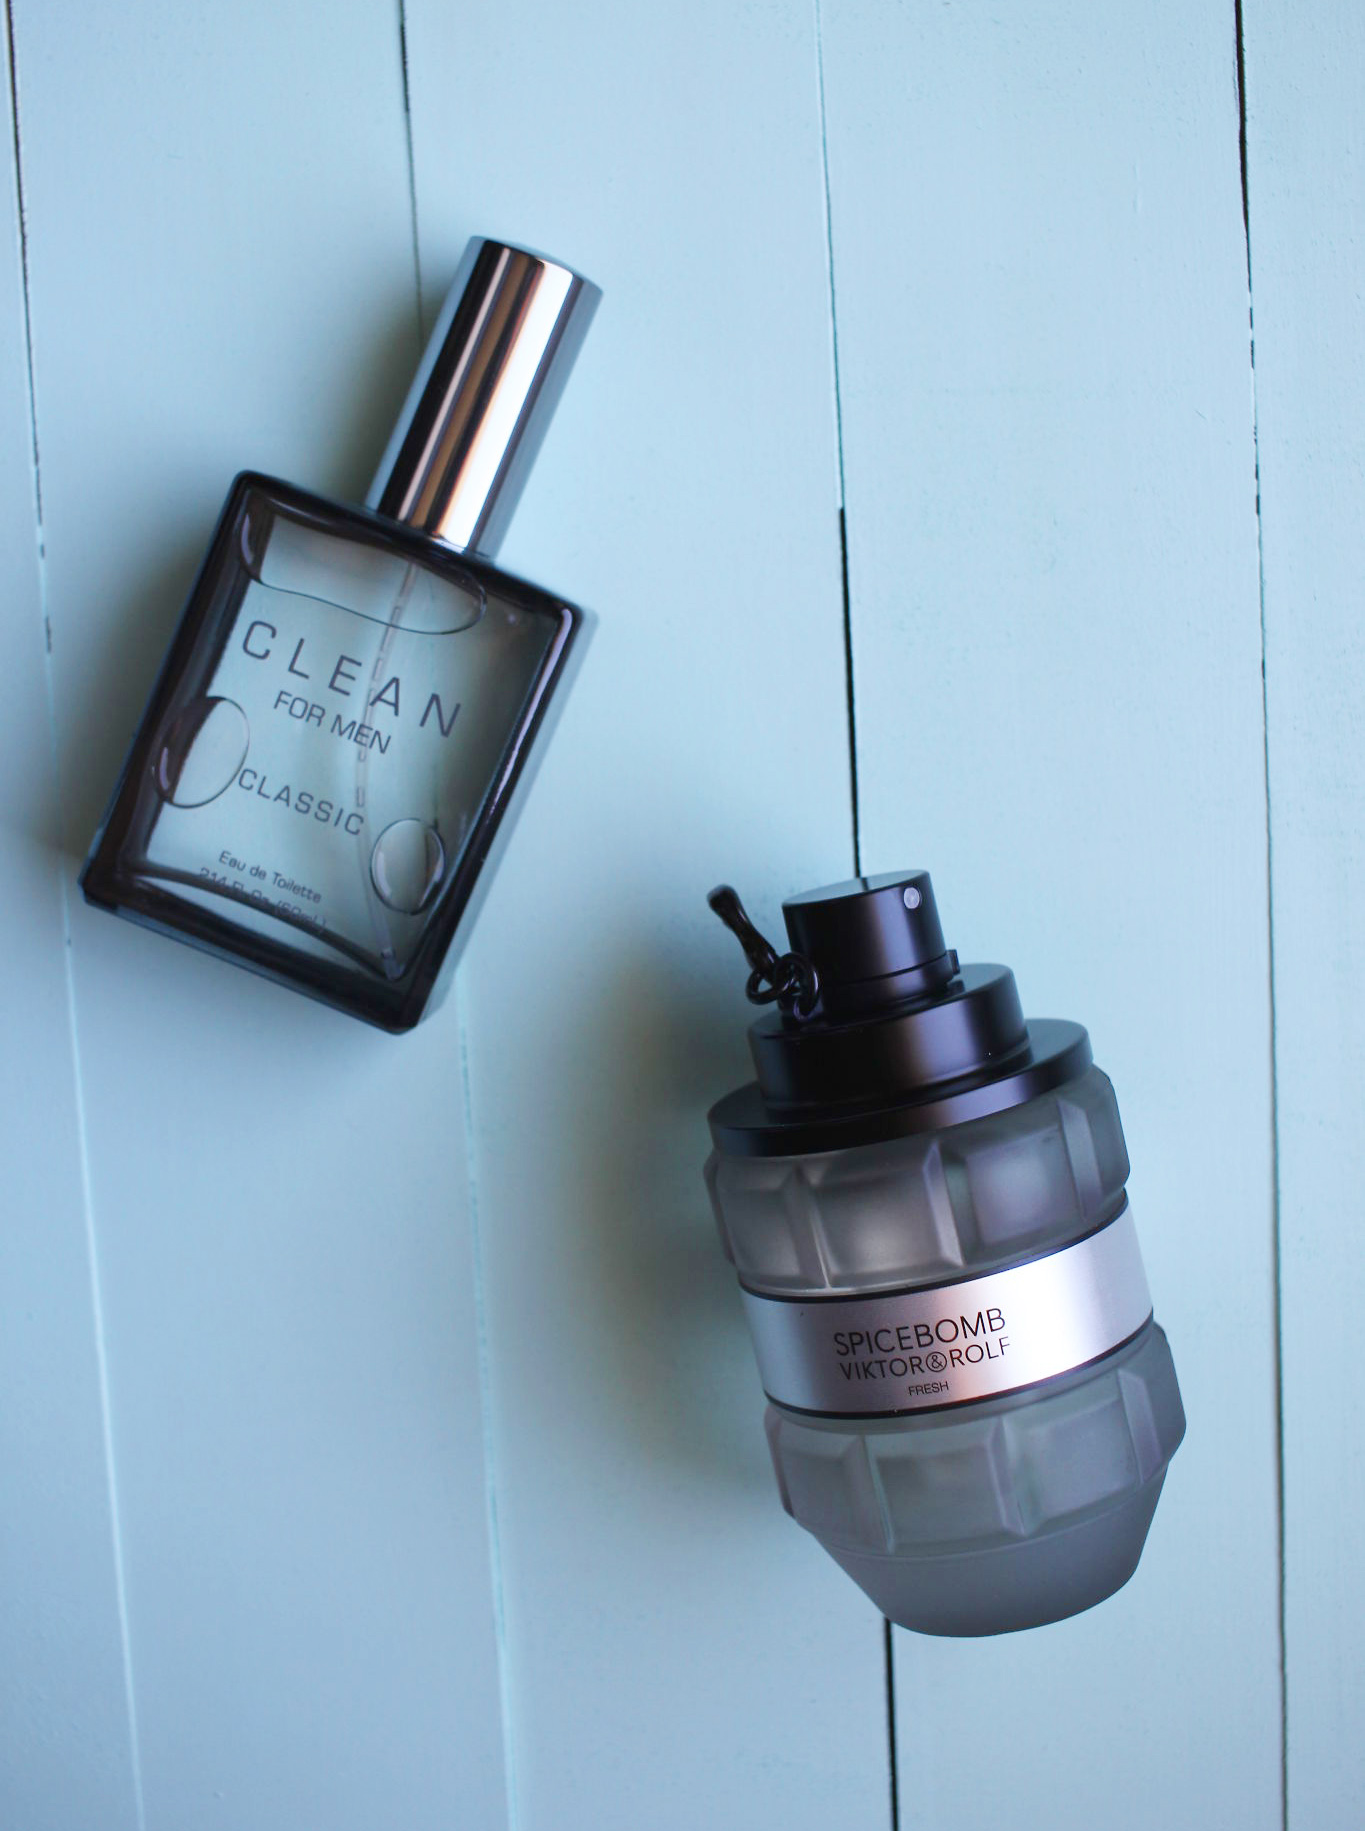 Clean Classic for Men, Victor & Rolf Spice Bomb